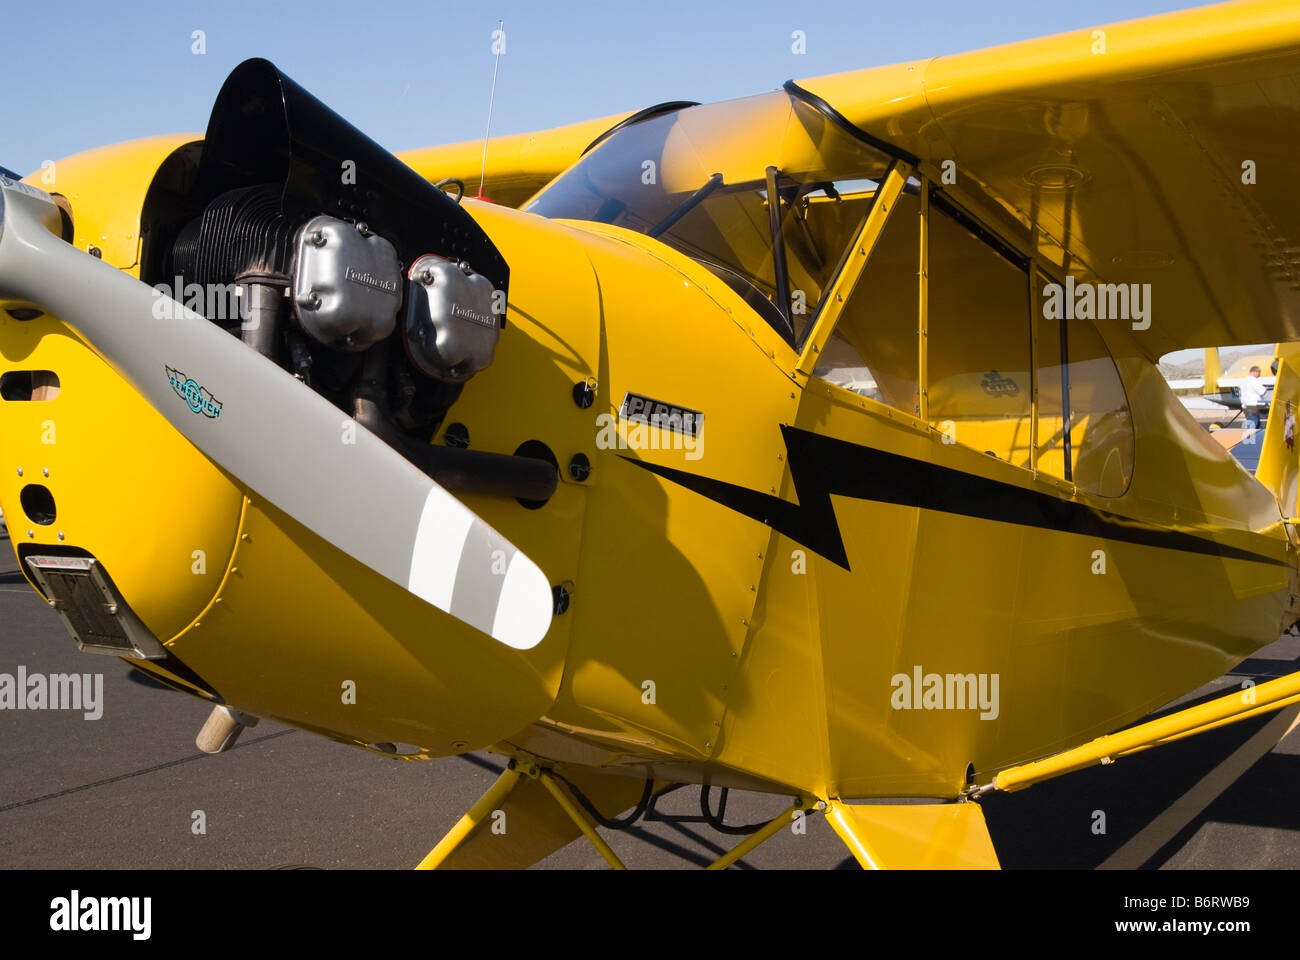 a Piper J3 Cub airplane on display at a fly in Stock Photo: 21423117